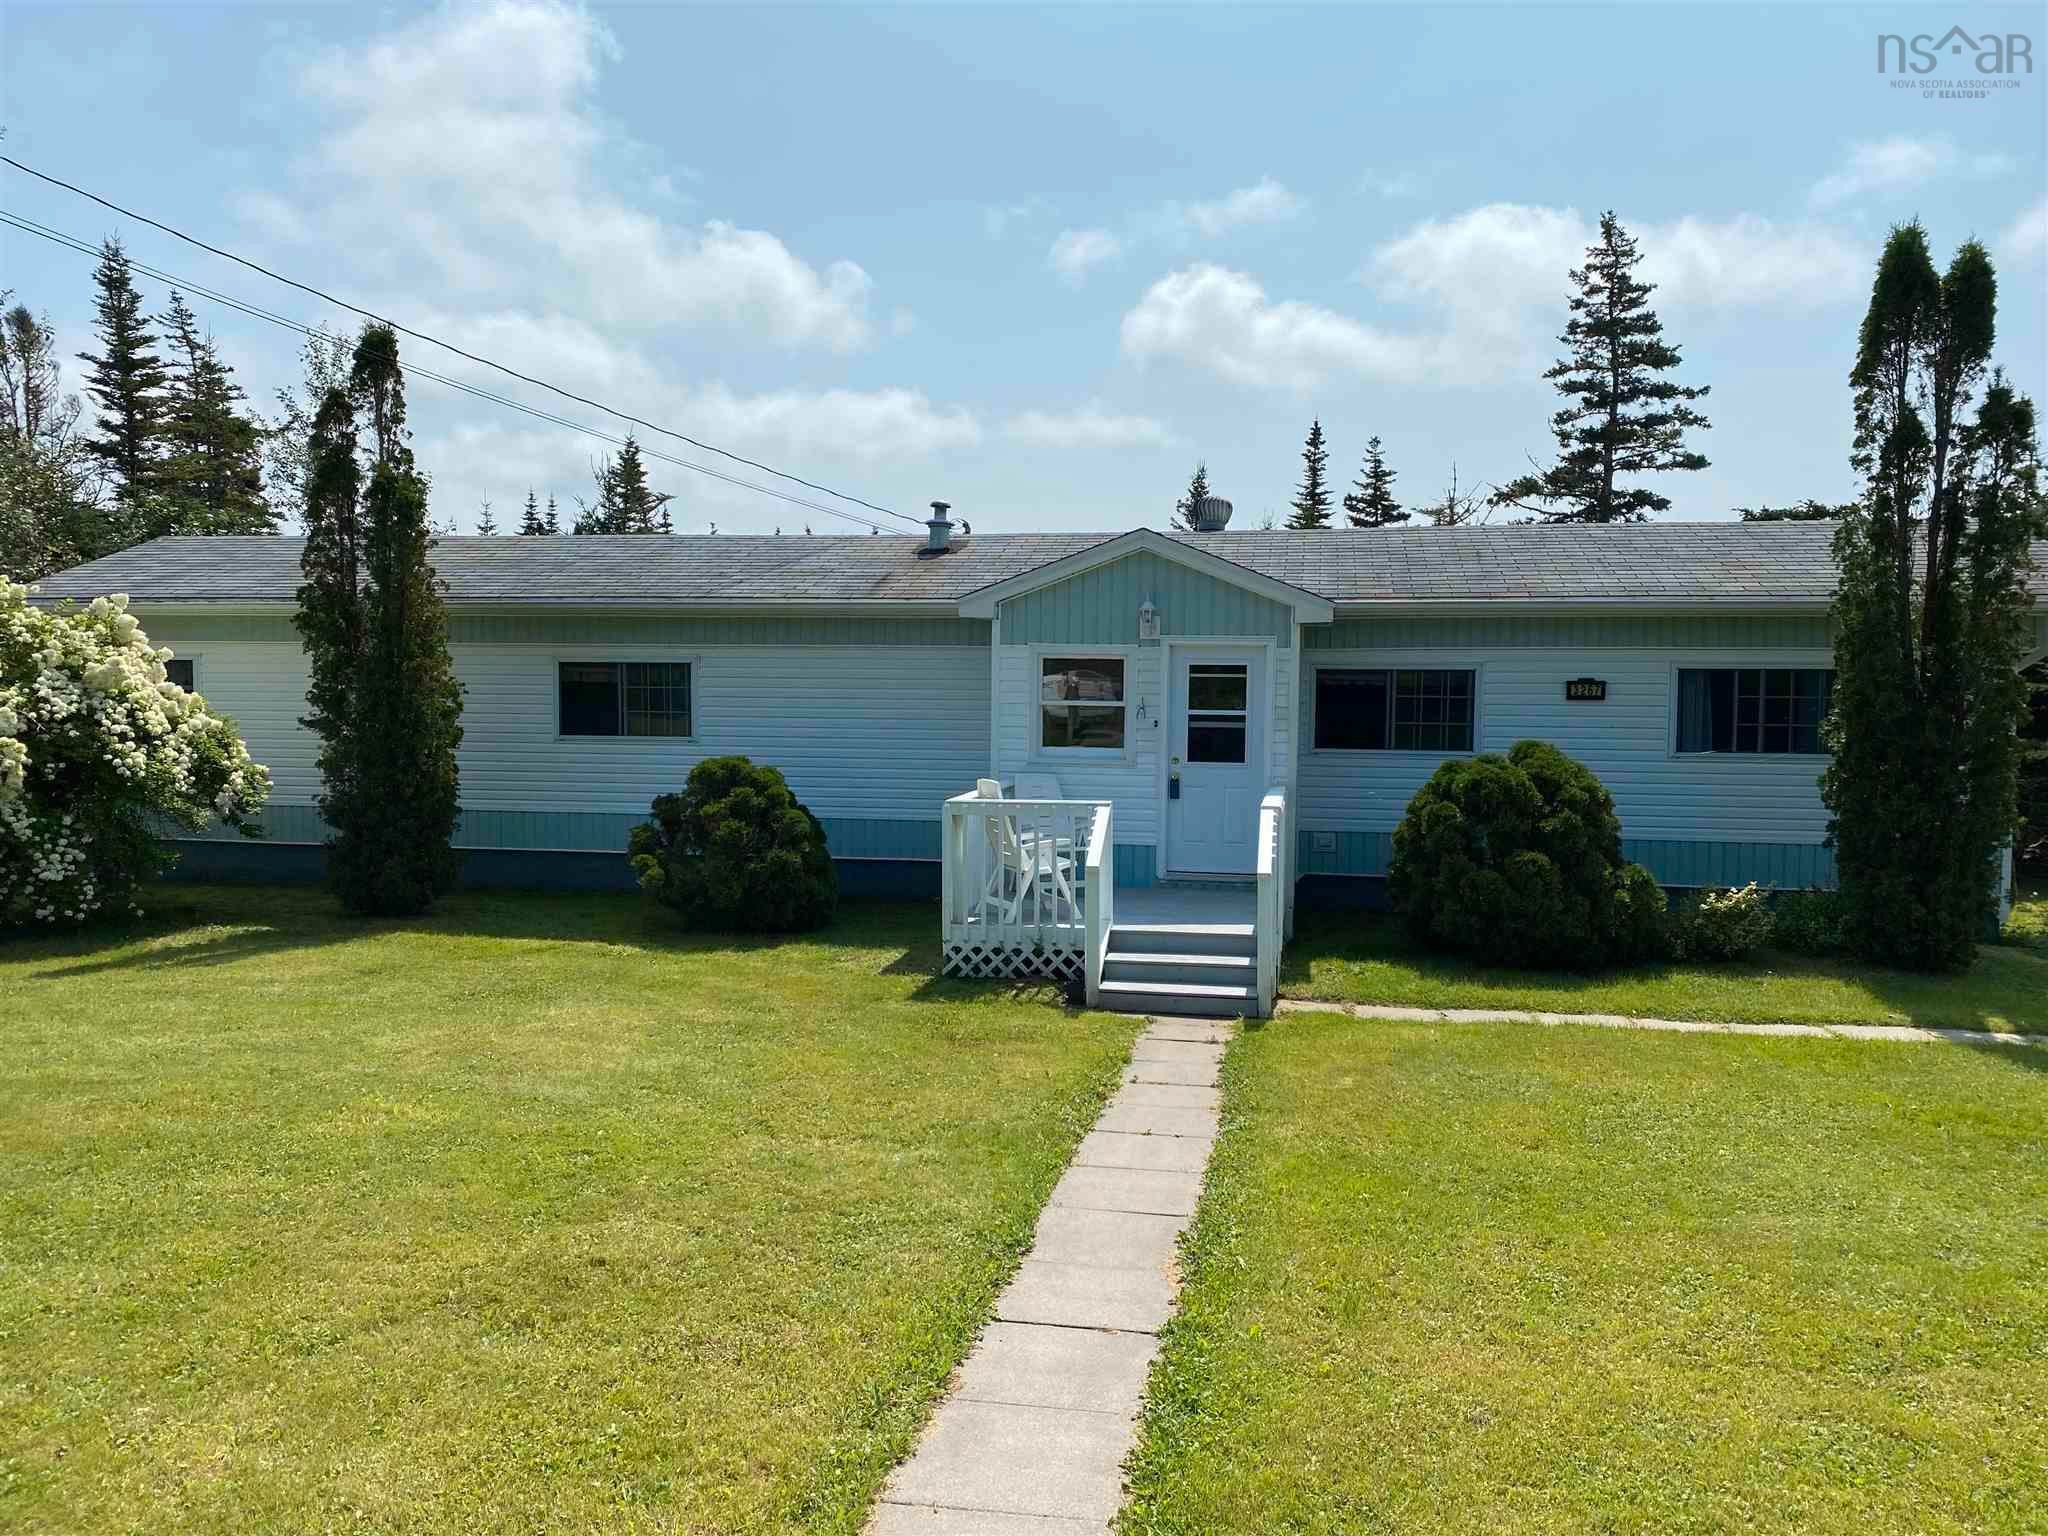 Main Photo: 3267 Clam Harbour Road in Clam Harbour: 35-Halifax County East Residential for sale (Halifax-Dartmouth)  : MLS®# 202121810